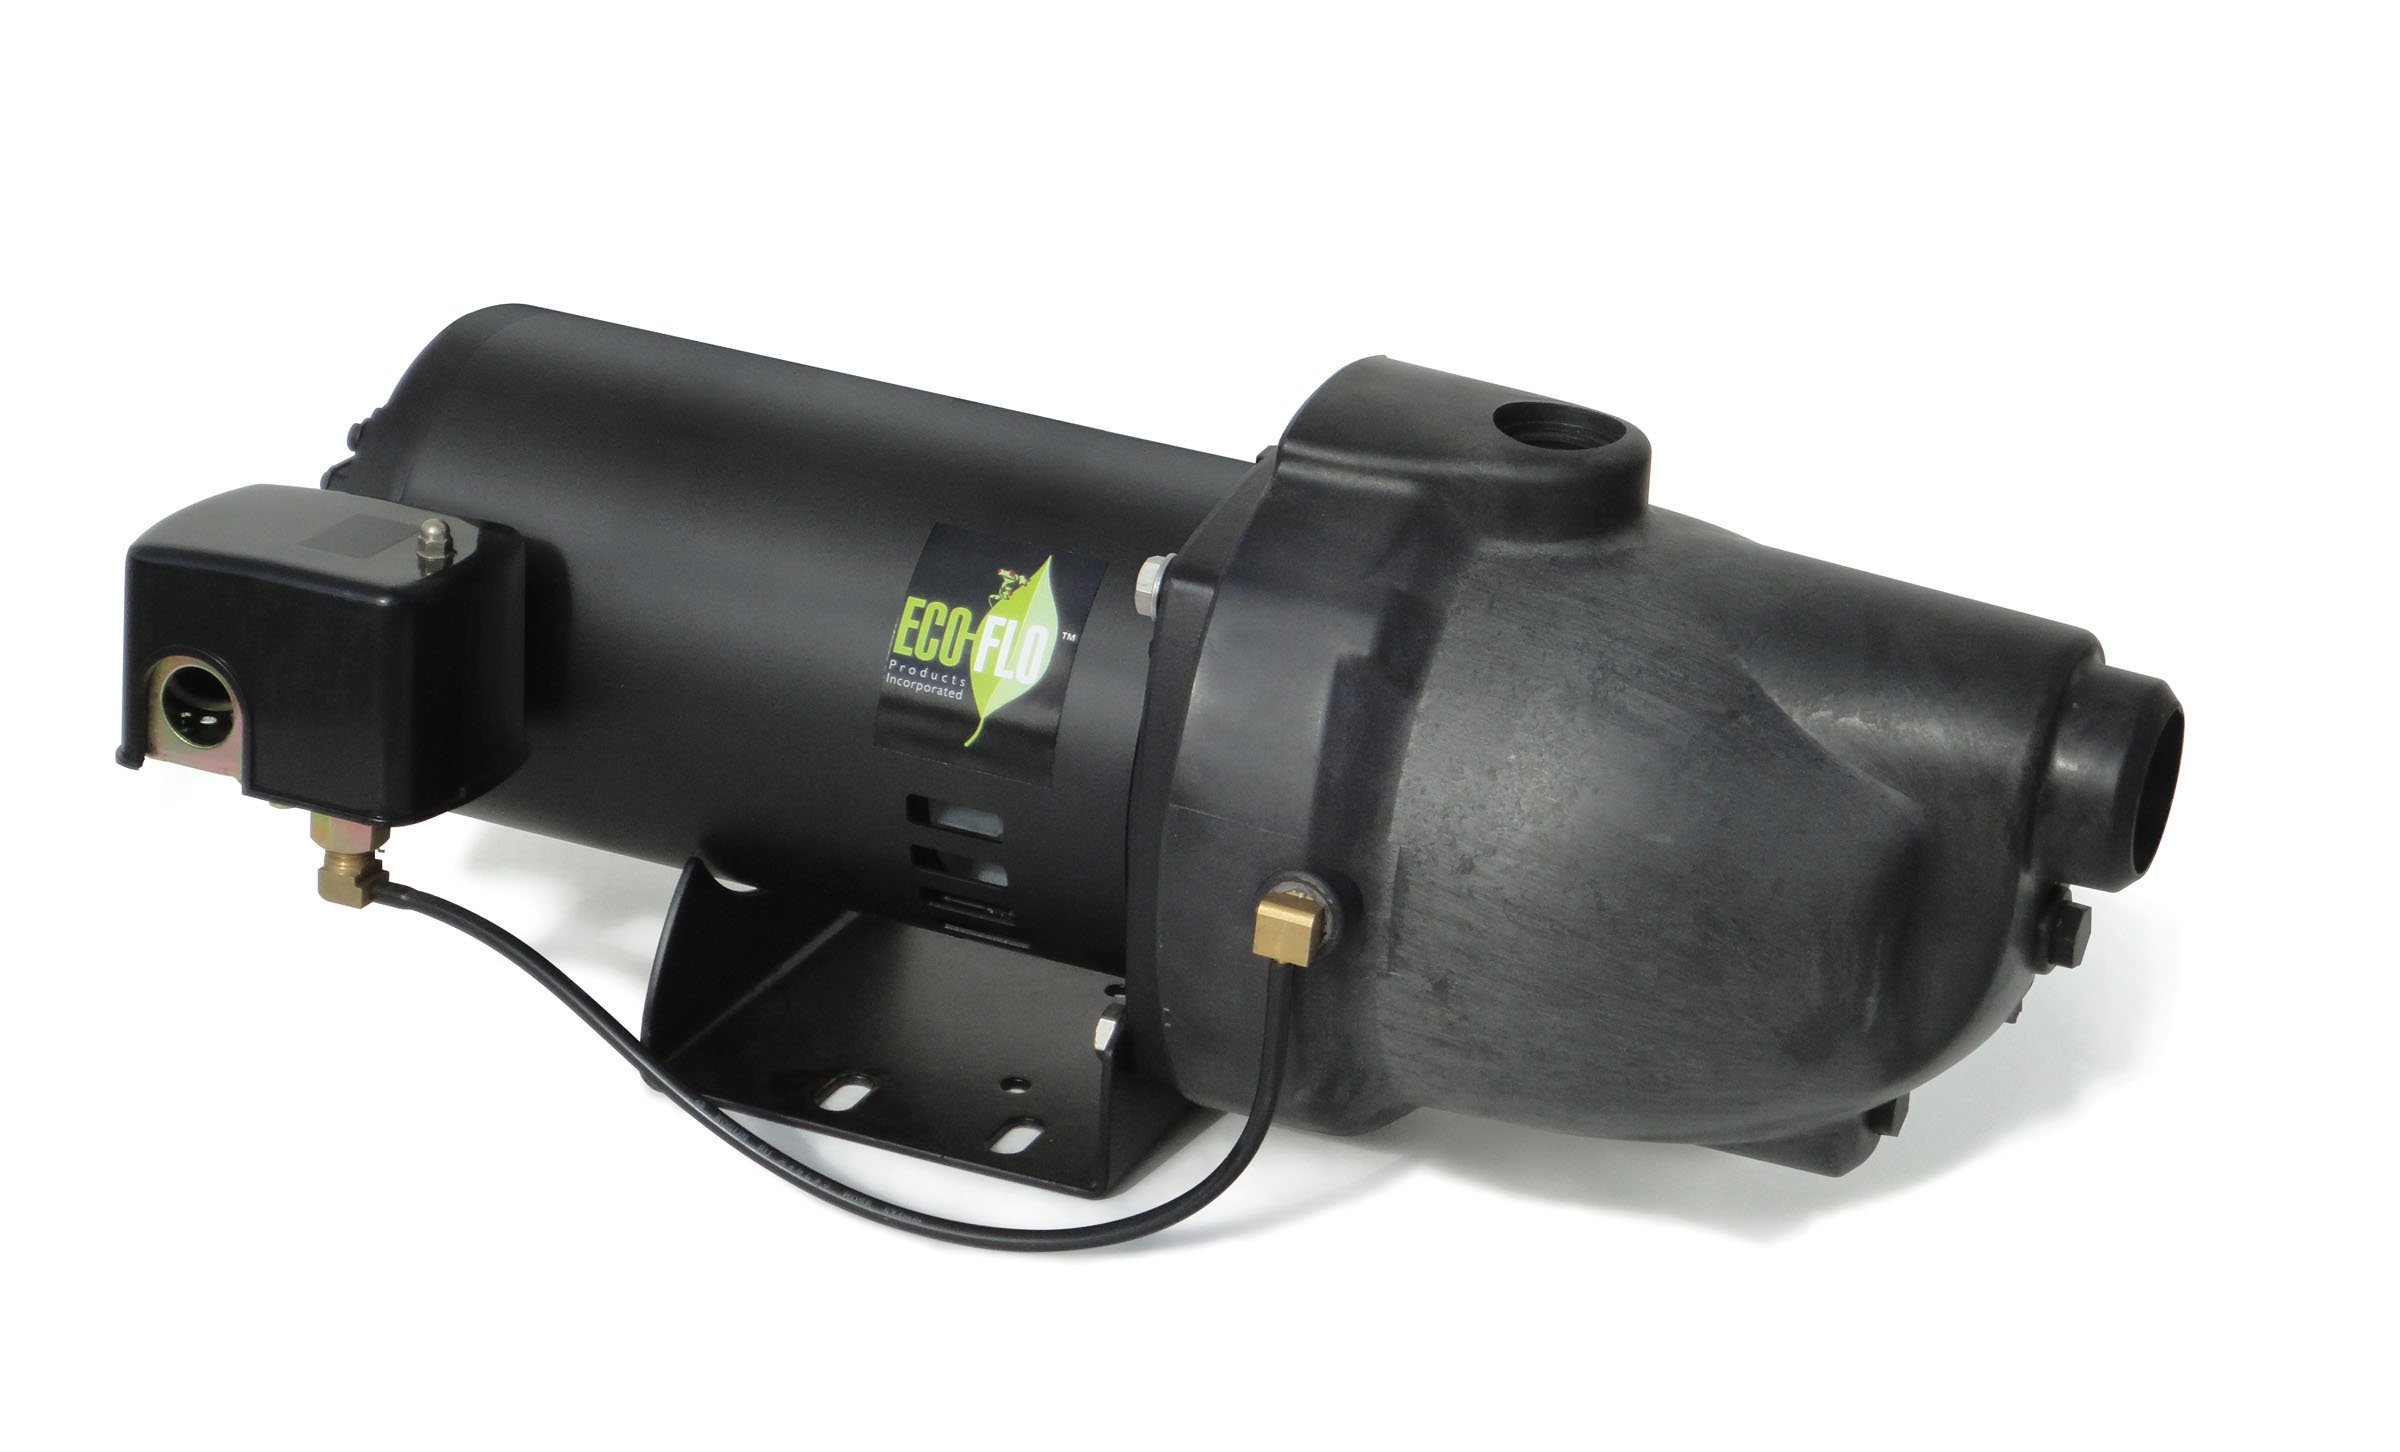 ECO-FLO Products EFSWJ10P Shallow Water Well Jet Pump, 1 HP, 17.3 GPM by ECO-FLO PRODUCTS INCORPORATED